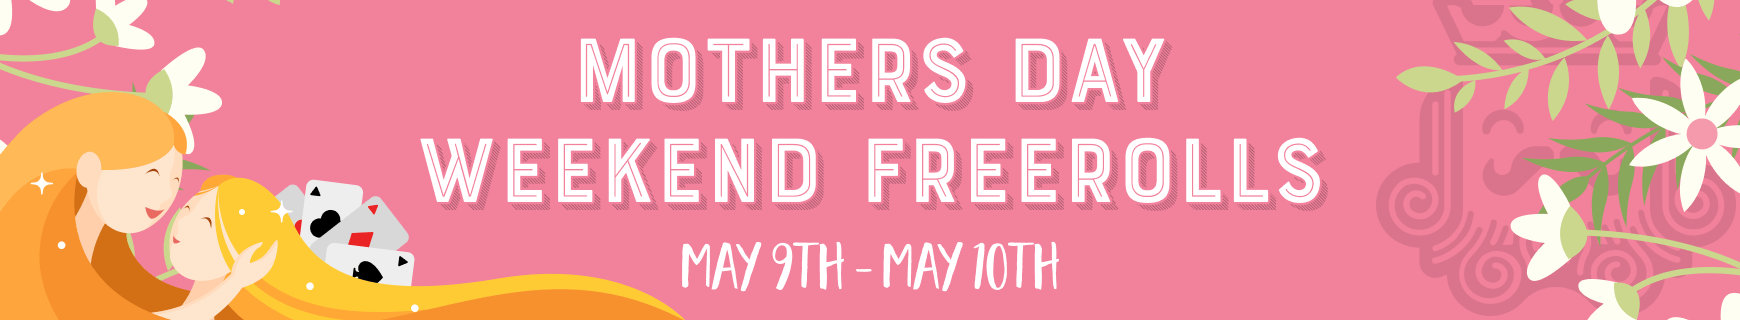 Mother's day weekend freerolls   dashboard %28870 x 160%29 2x